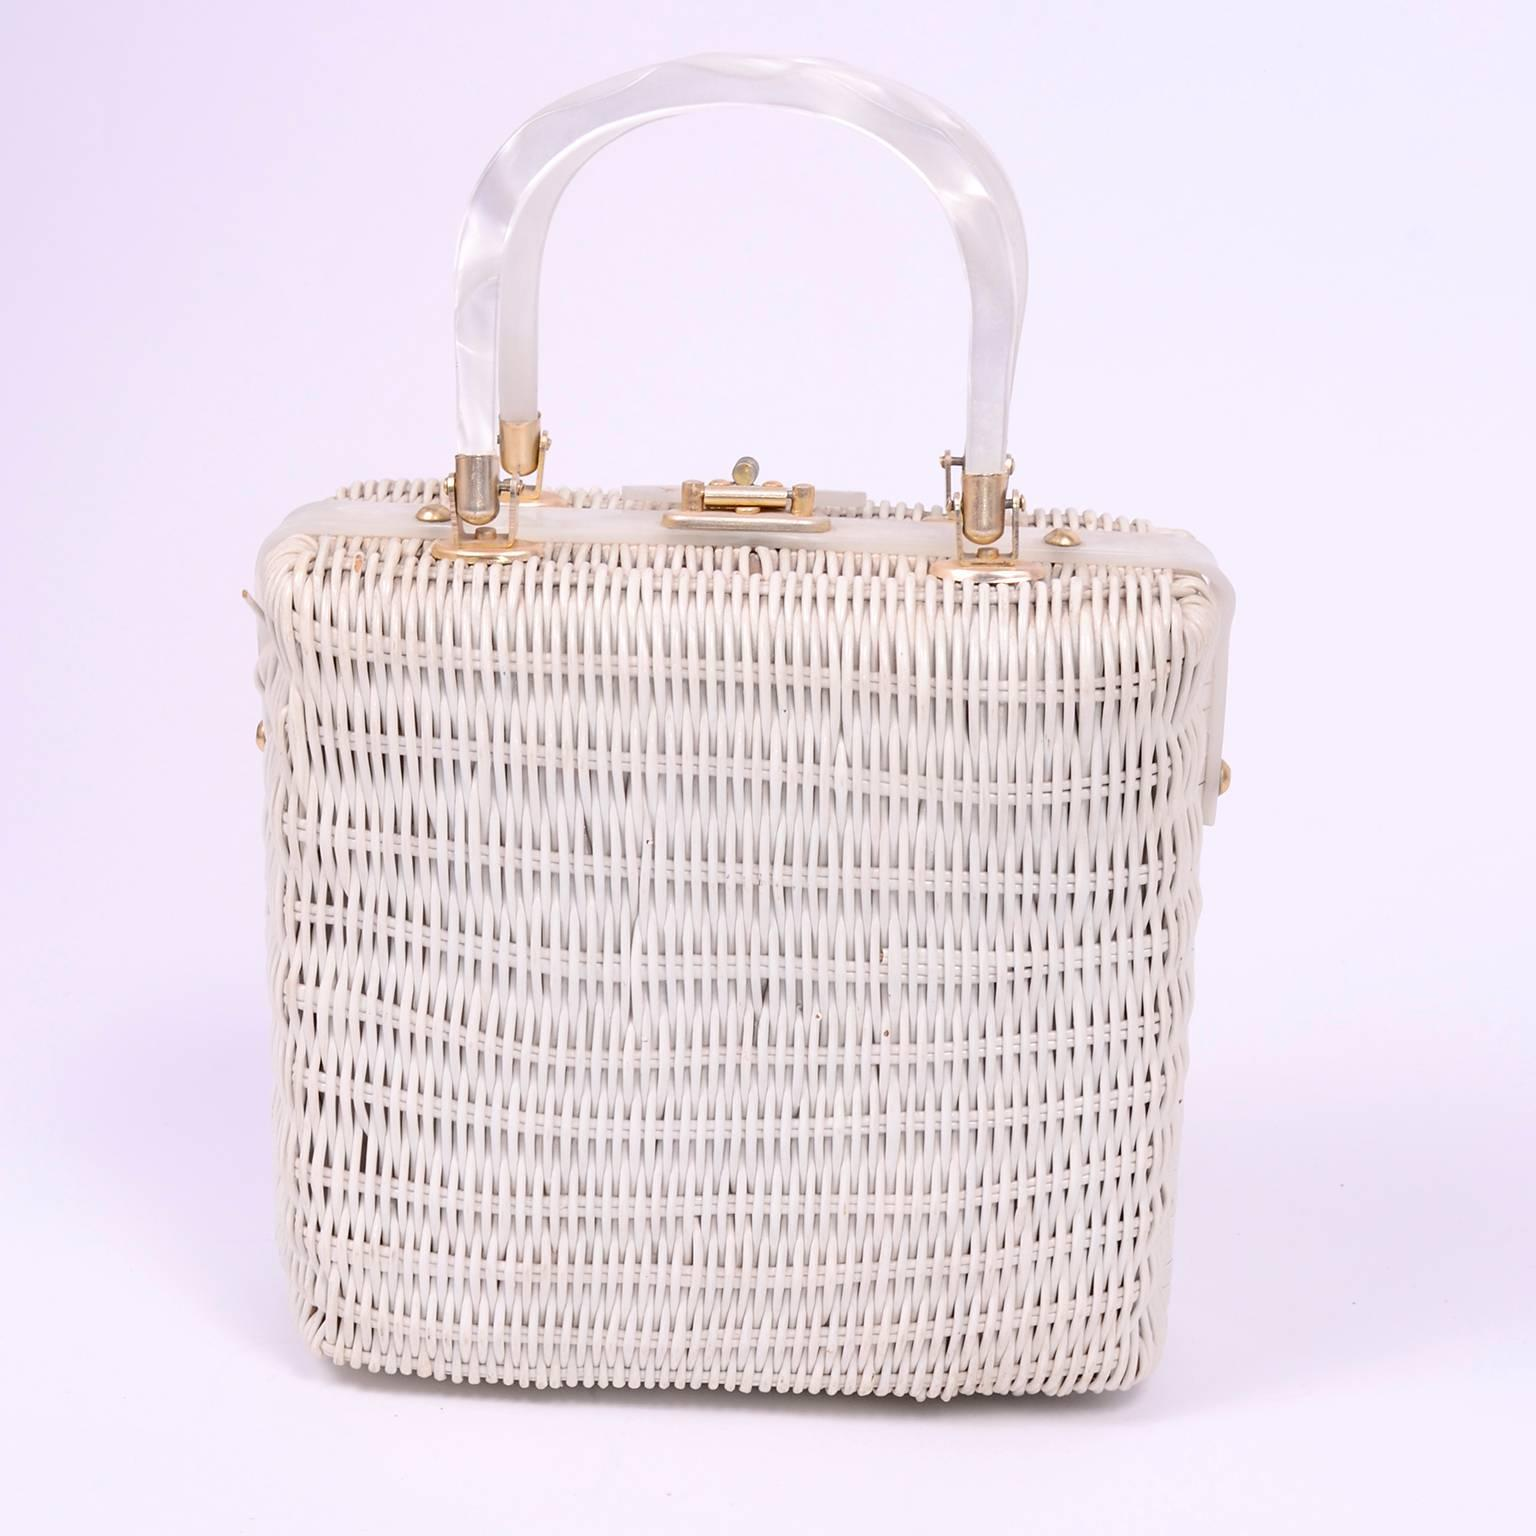 1stdibs 60s Novelty White Wicker Handbag W/ Lucite Rome London New York & Paris Plaques WRdITgNM